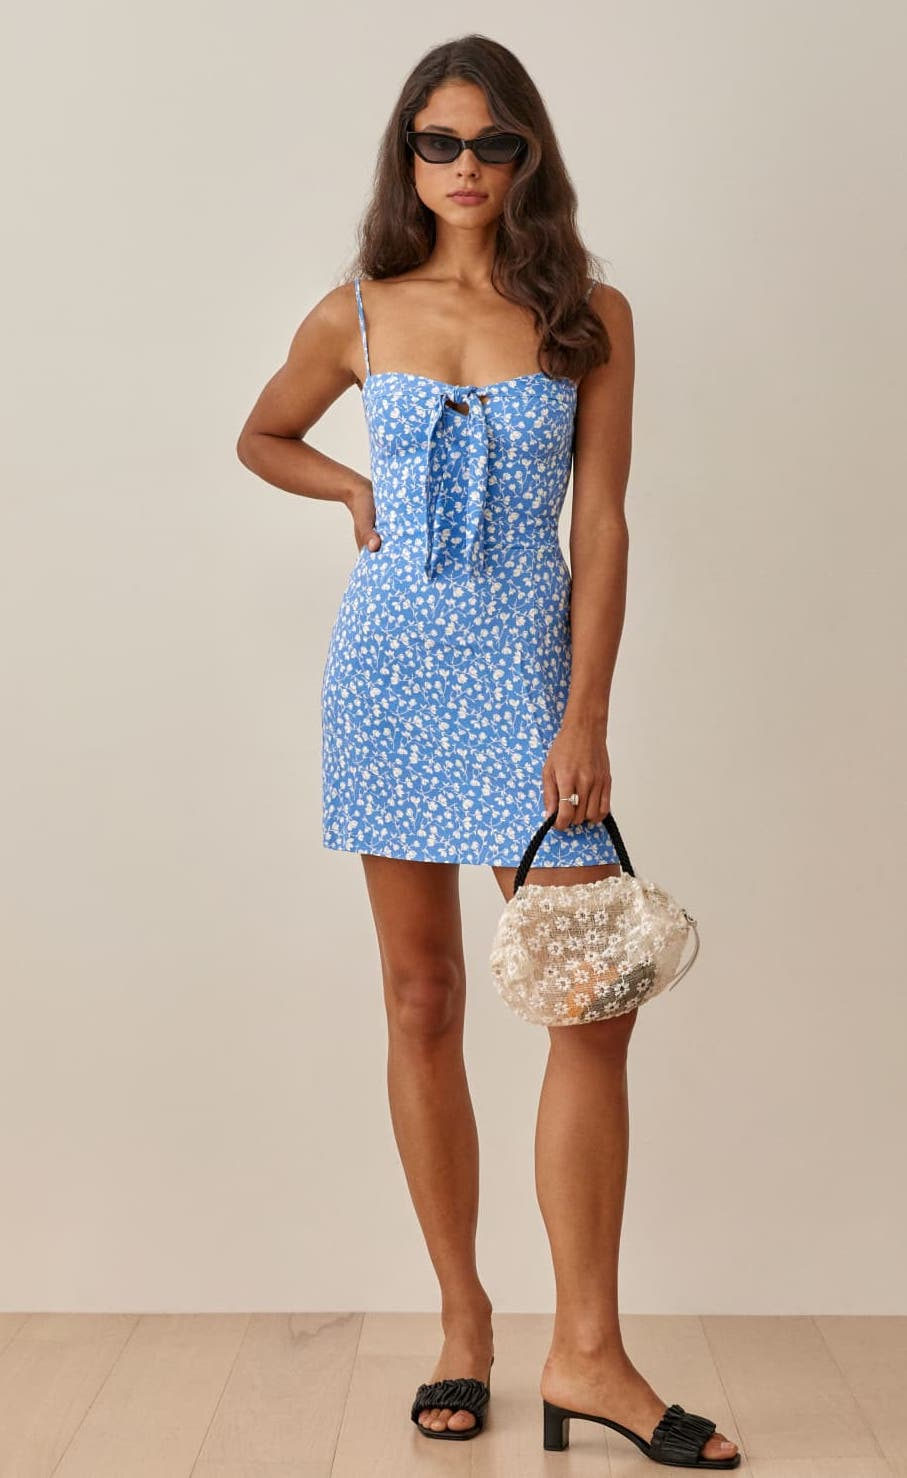 Blue floral retro dress with ribbon